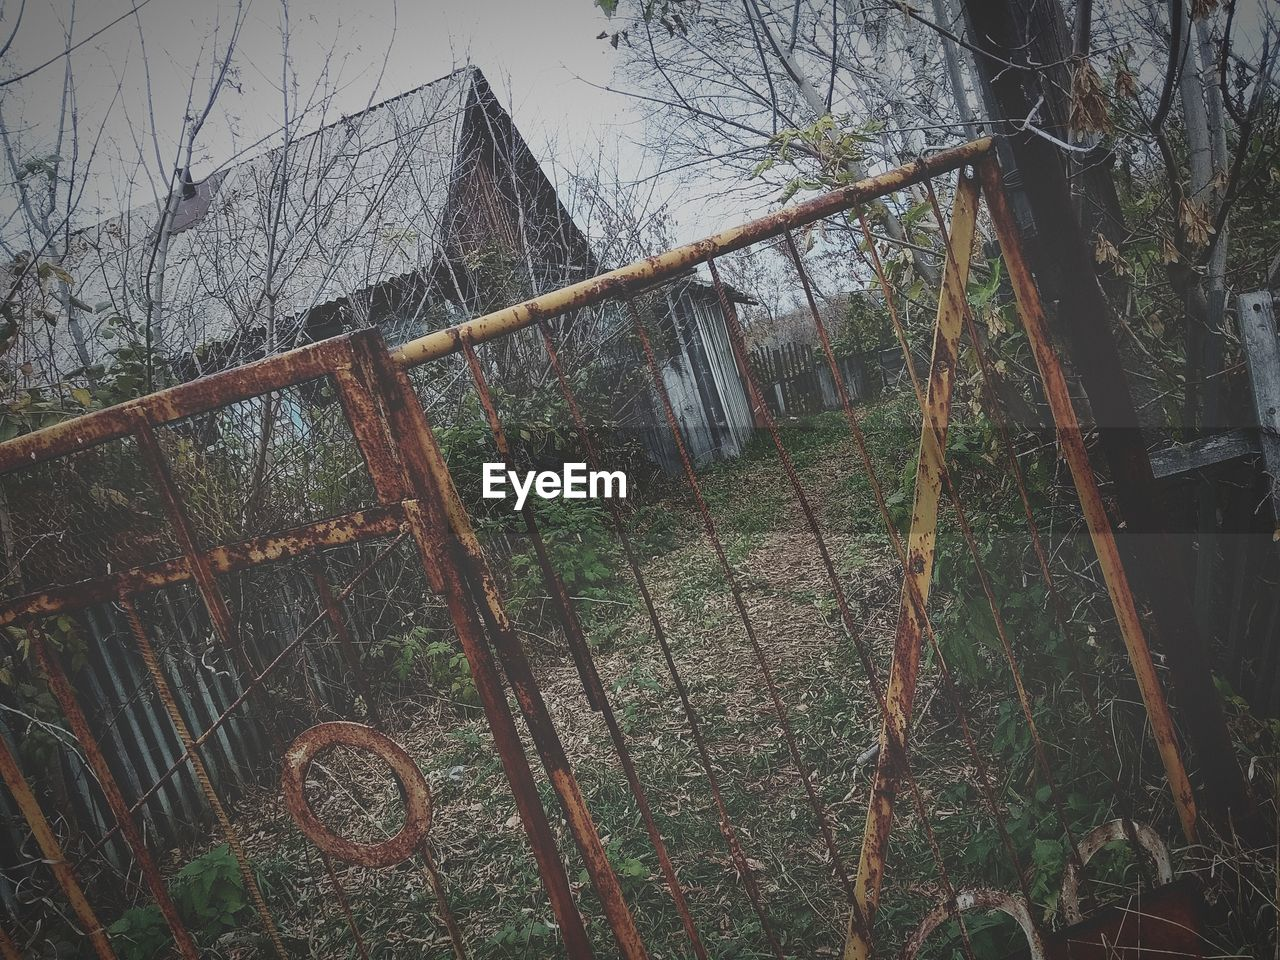 plant, tree, land, abandoned, no people, architecture, obsolete, nature, damaged, forest, old, day, built structure, rusty, deterioration, decline, run-down, tranquility, metal, barrier, outdoors, wheel